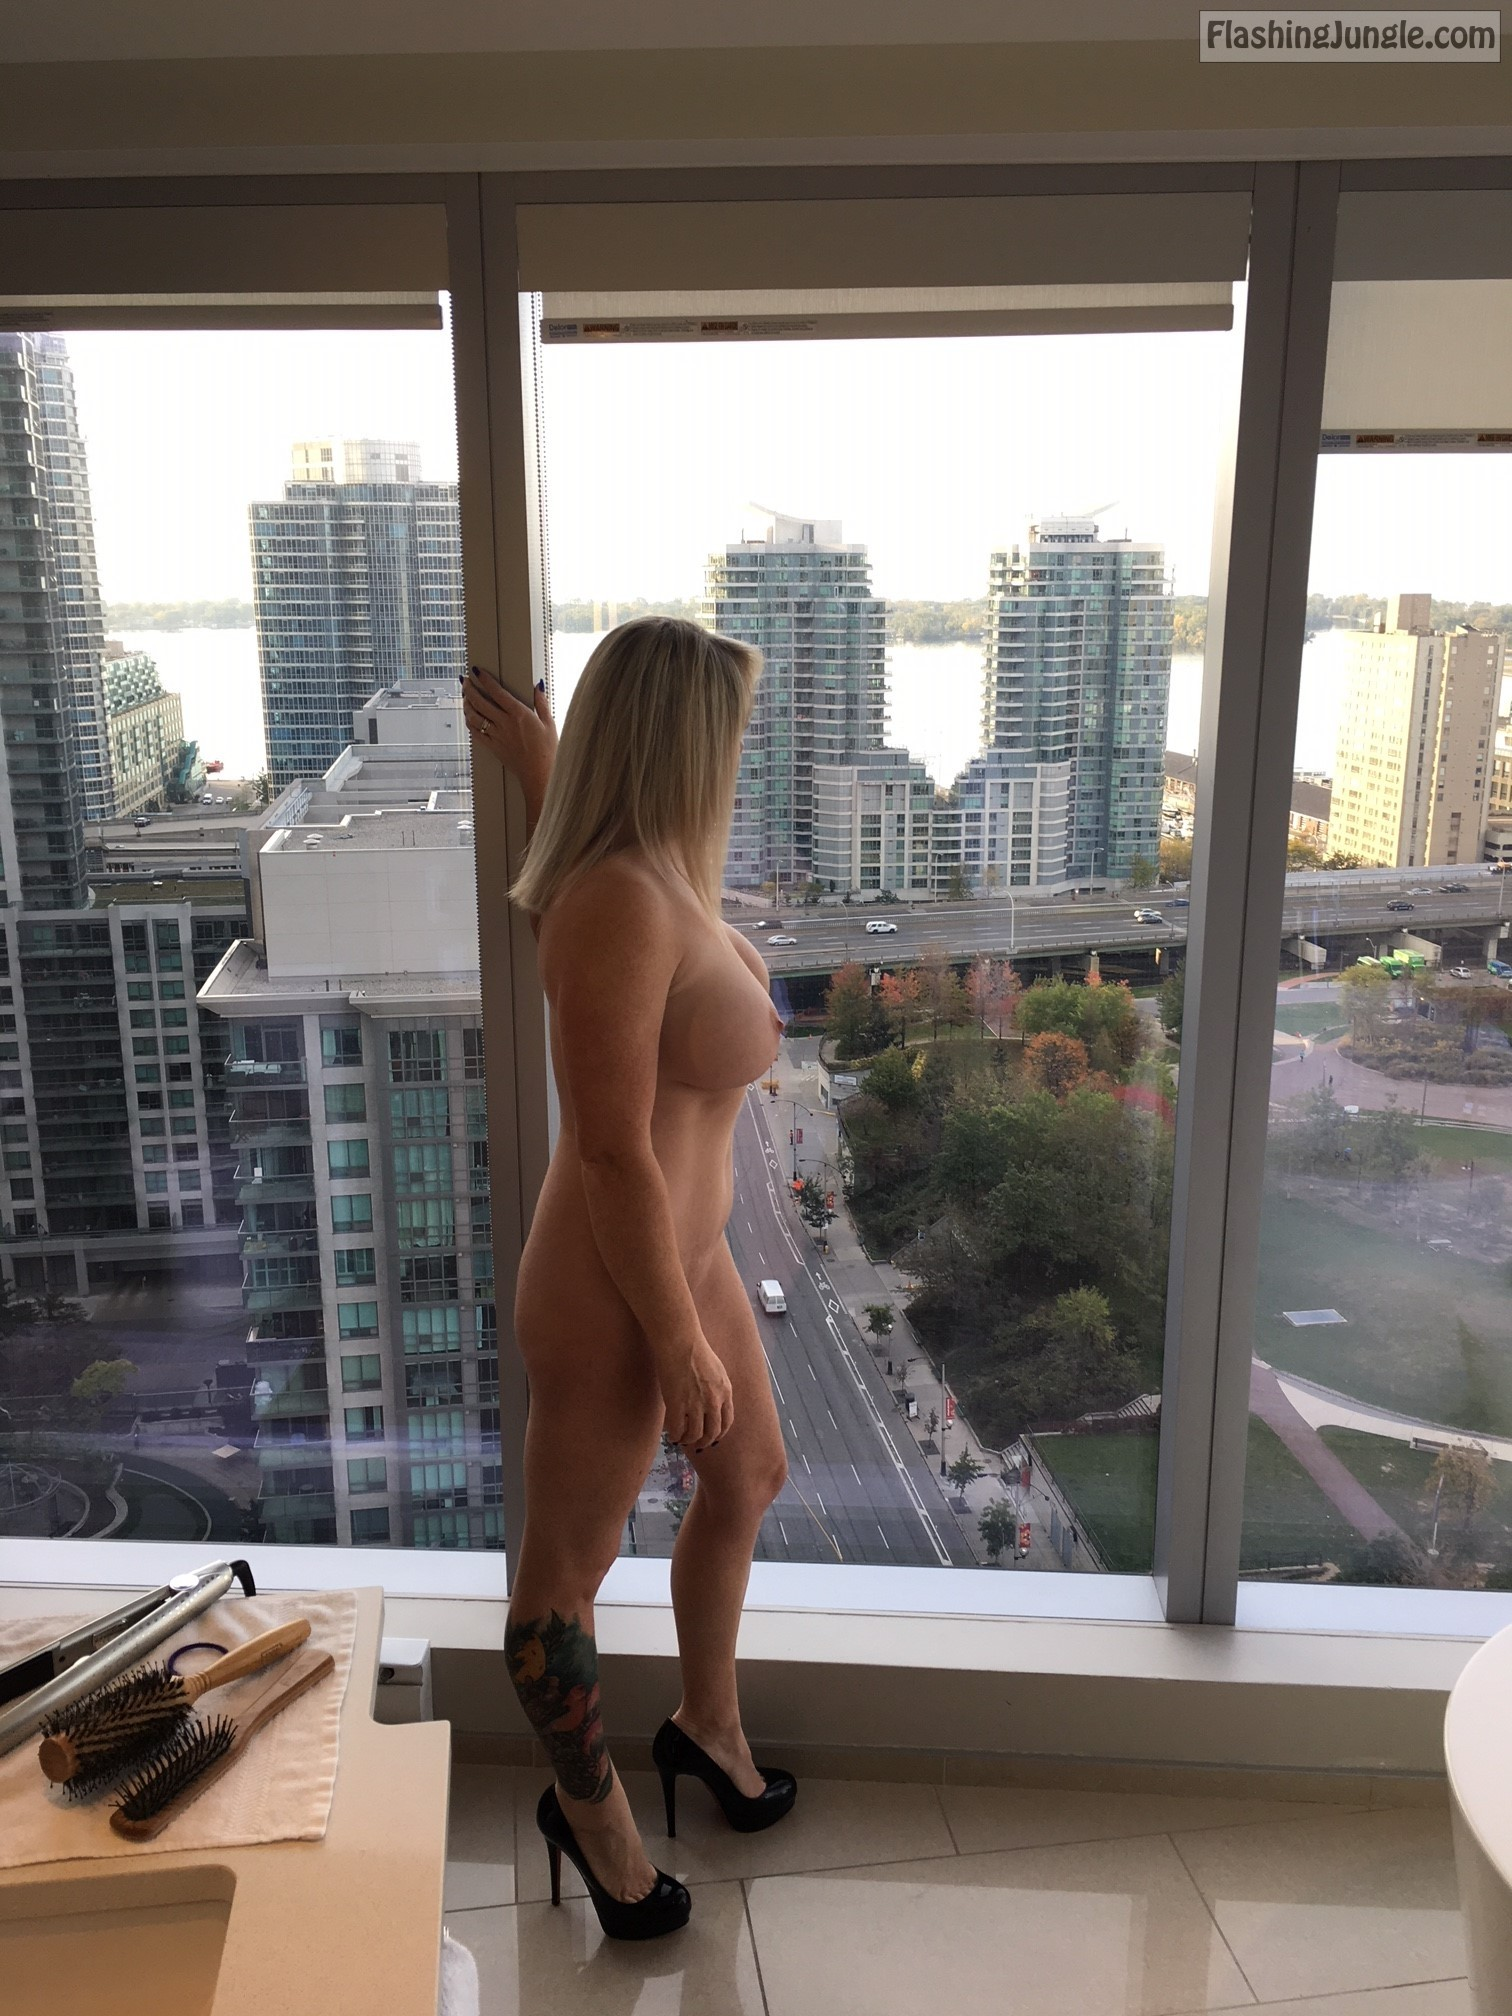 Hotwife naked on window @geemanandwoman regards from Toronto public nudity milf pics howife